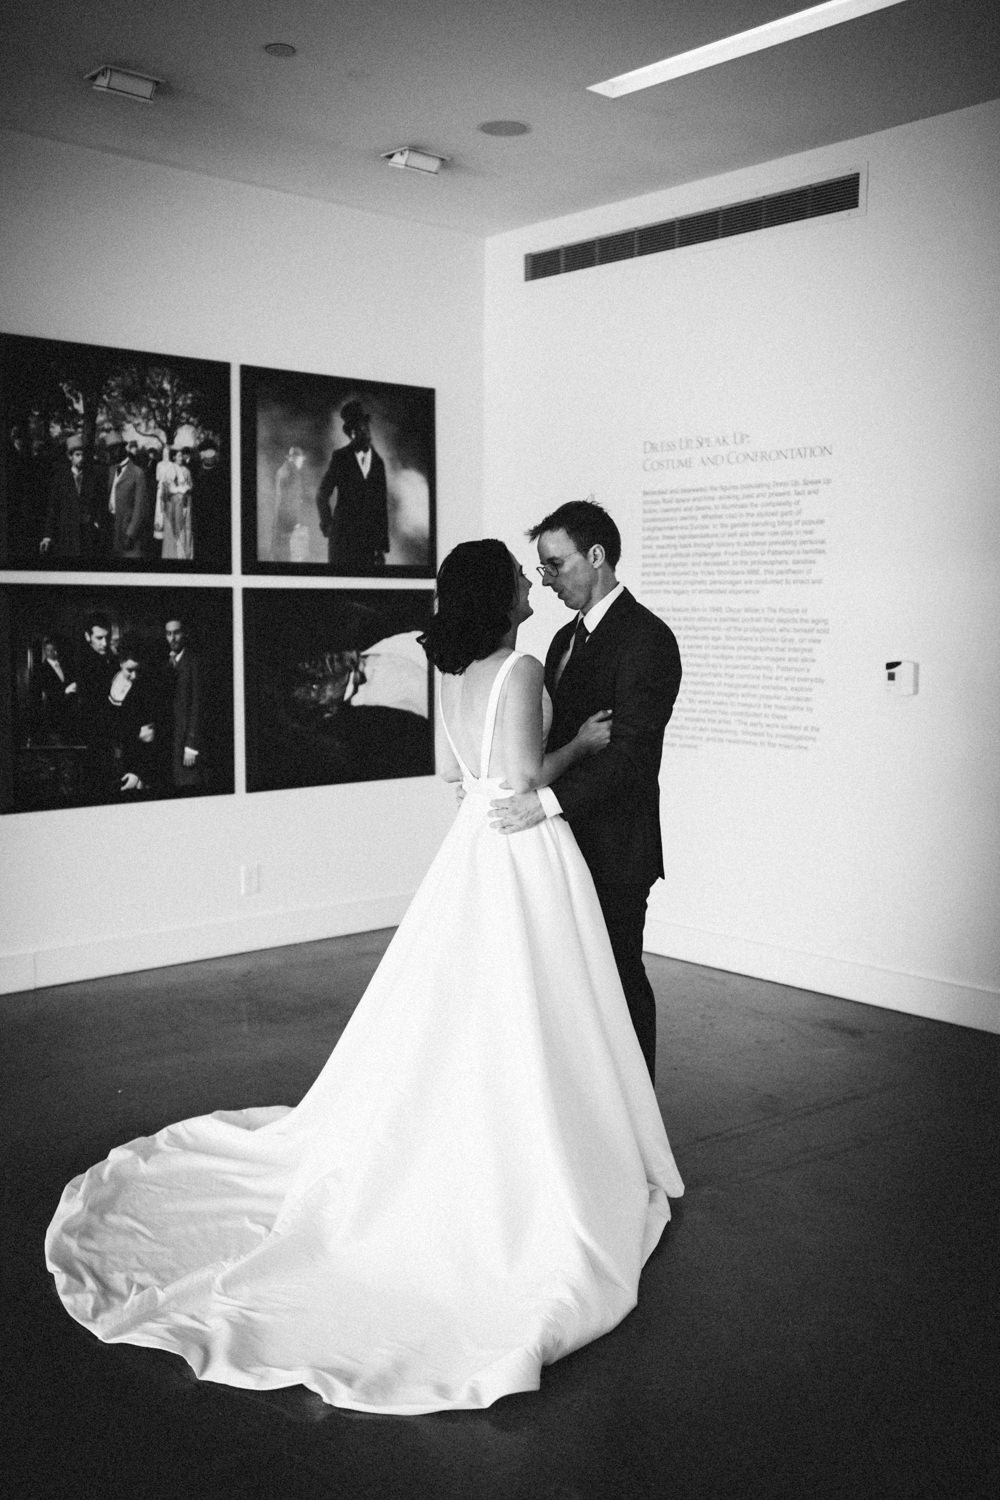 Jessica-Arno-Intimate-21c-Museum-Louisville-Kentucky-Wedding-By-Sarah-Katherine-Davis-Photography-153bw.jpg